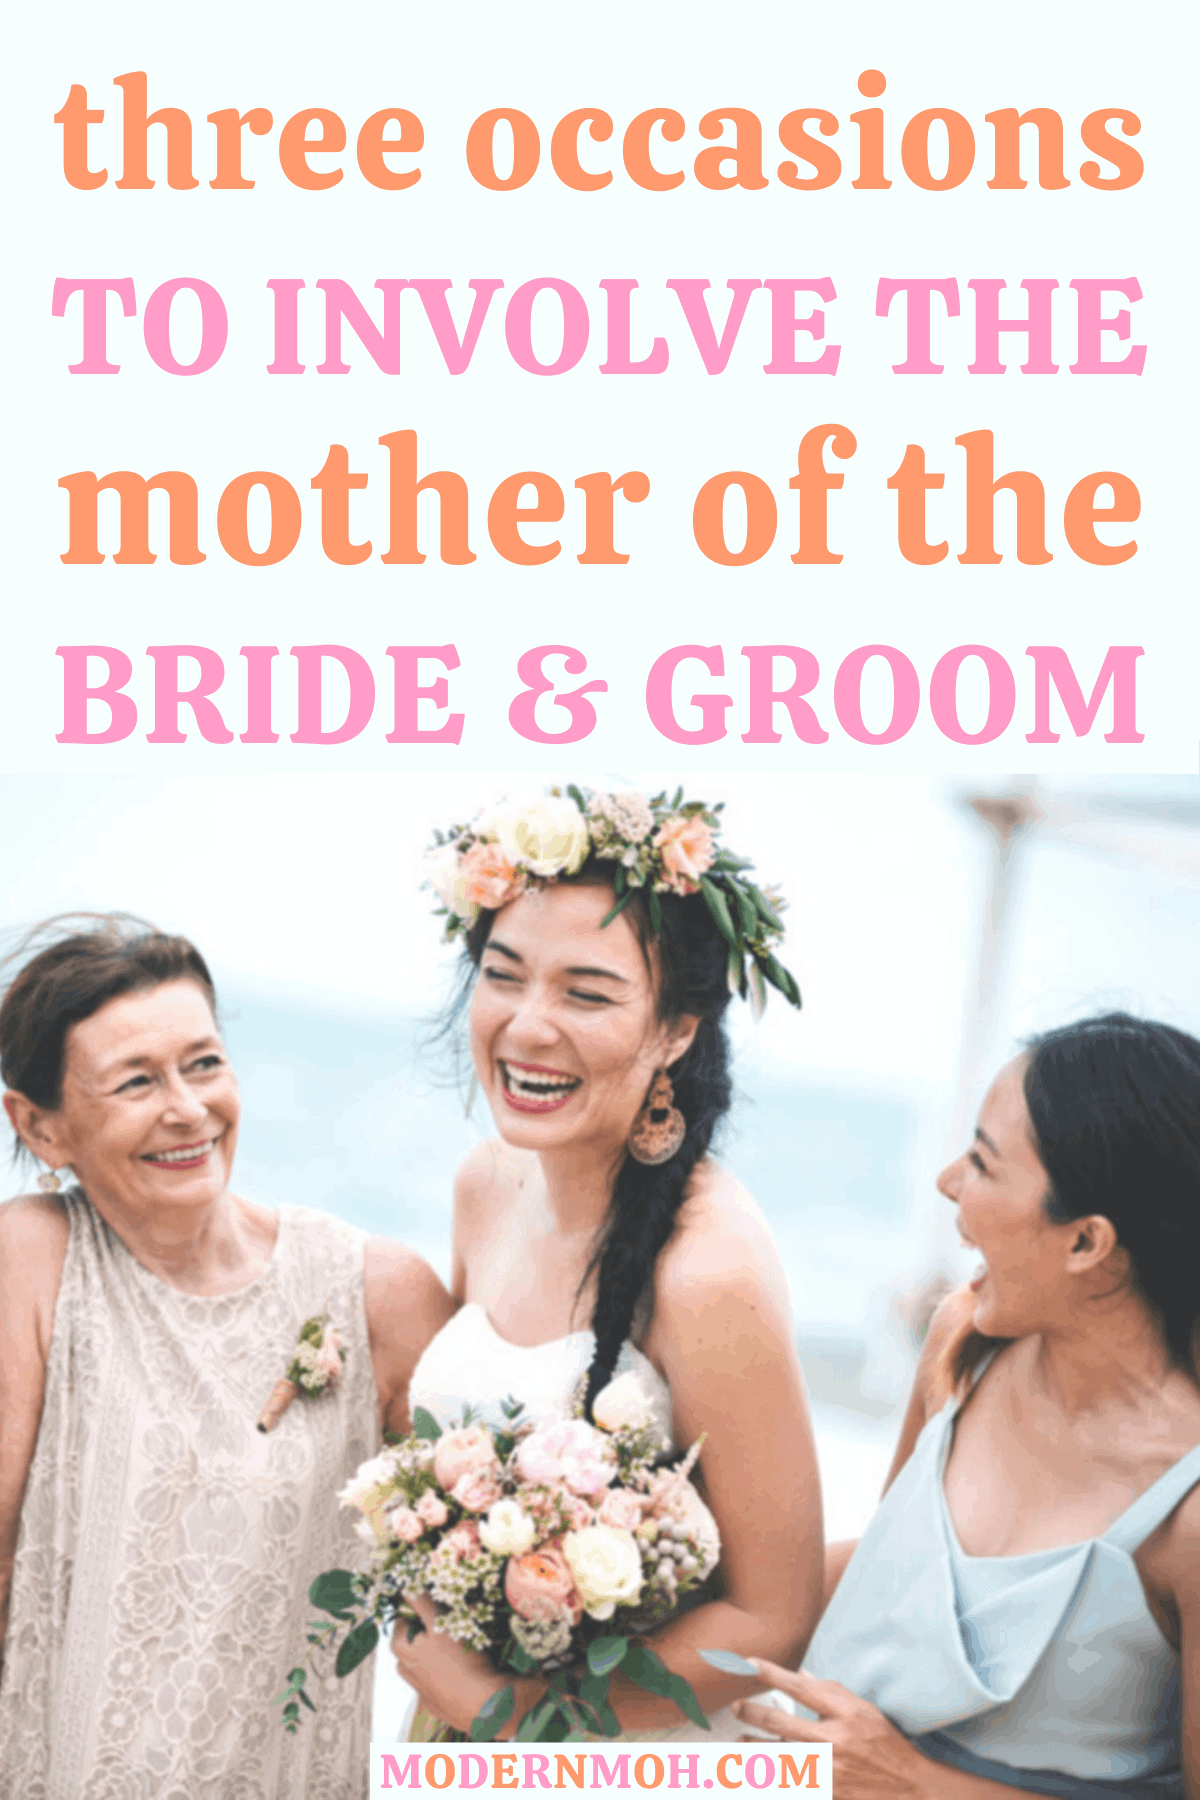 3 Occasions to Involve the Mother of the Bride and Groom